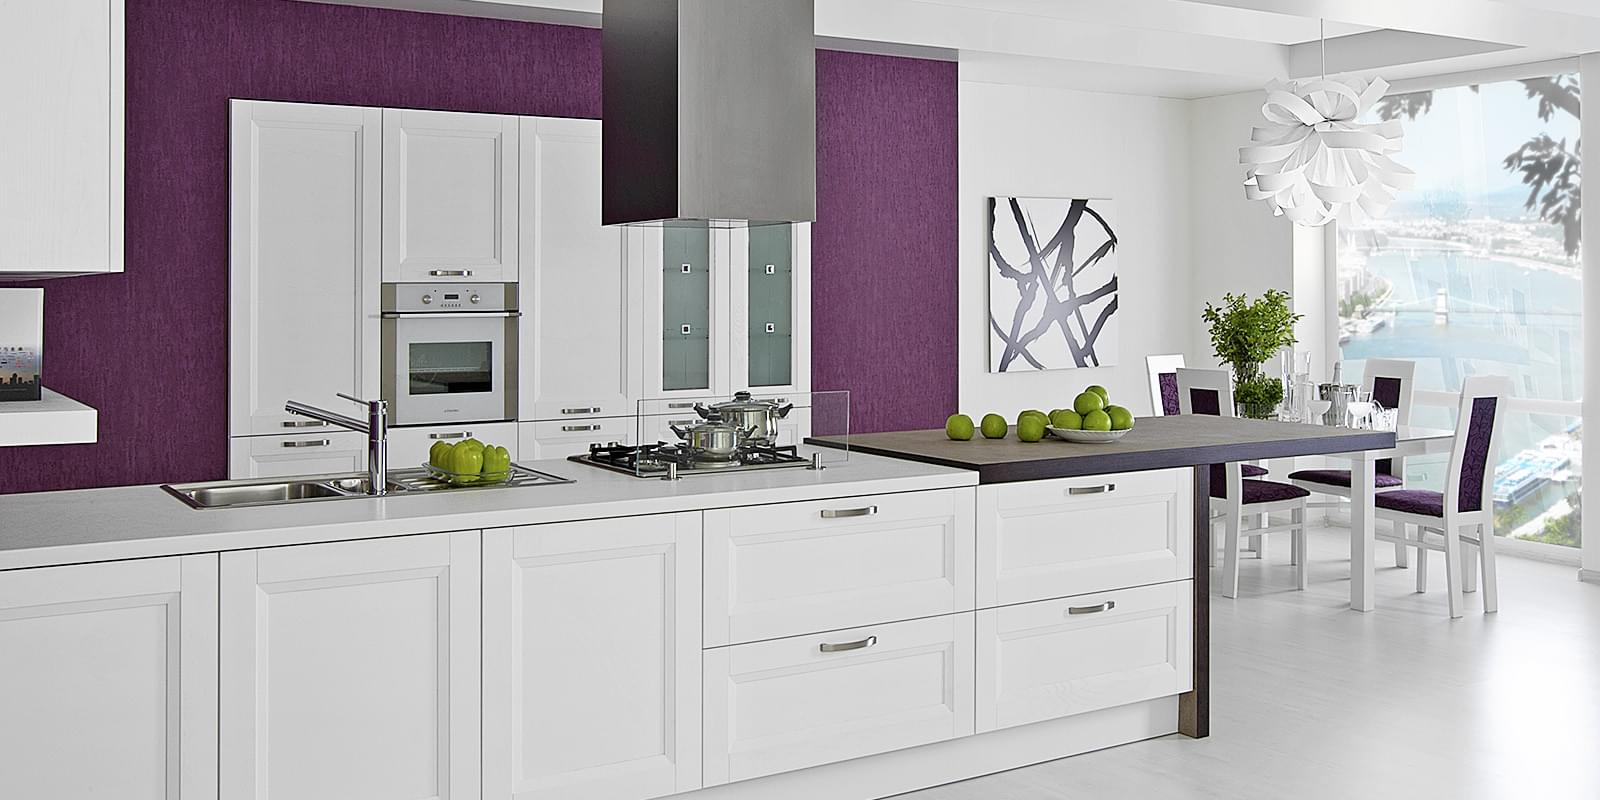 Dialog Kitchens - Rafaella